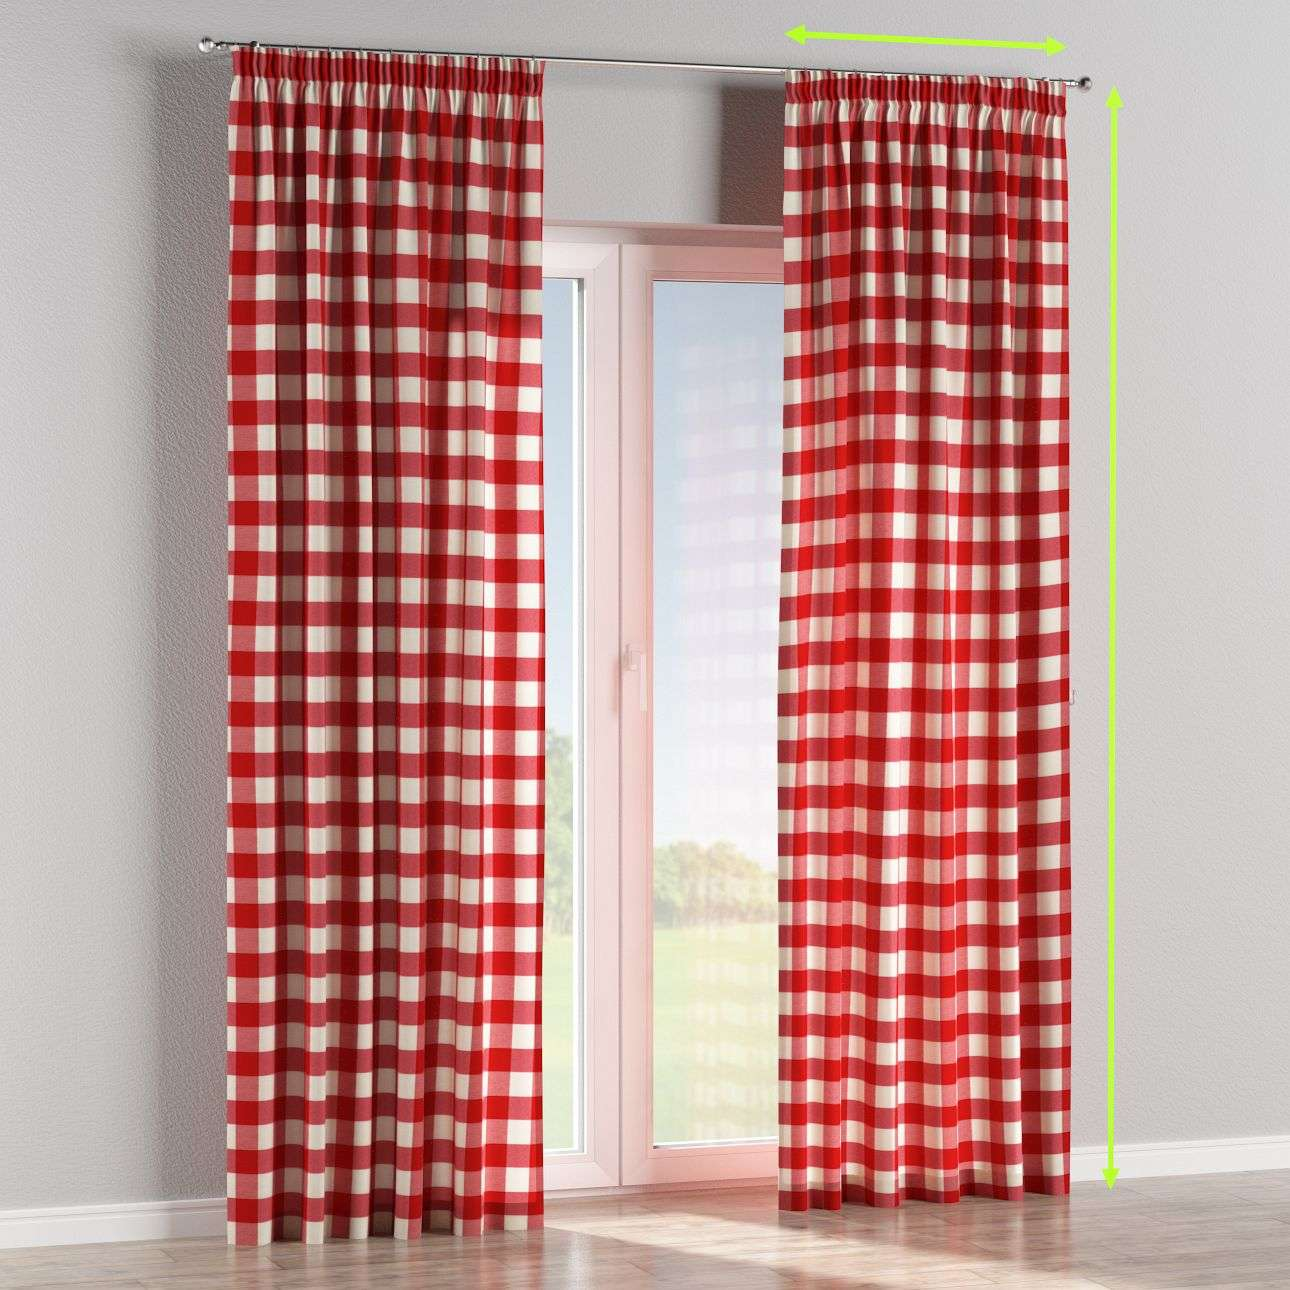 Pencil pleat curtains in collection Quadro, fabric: 136-18